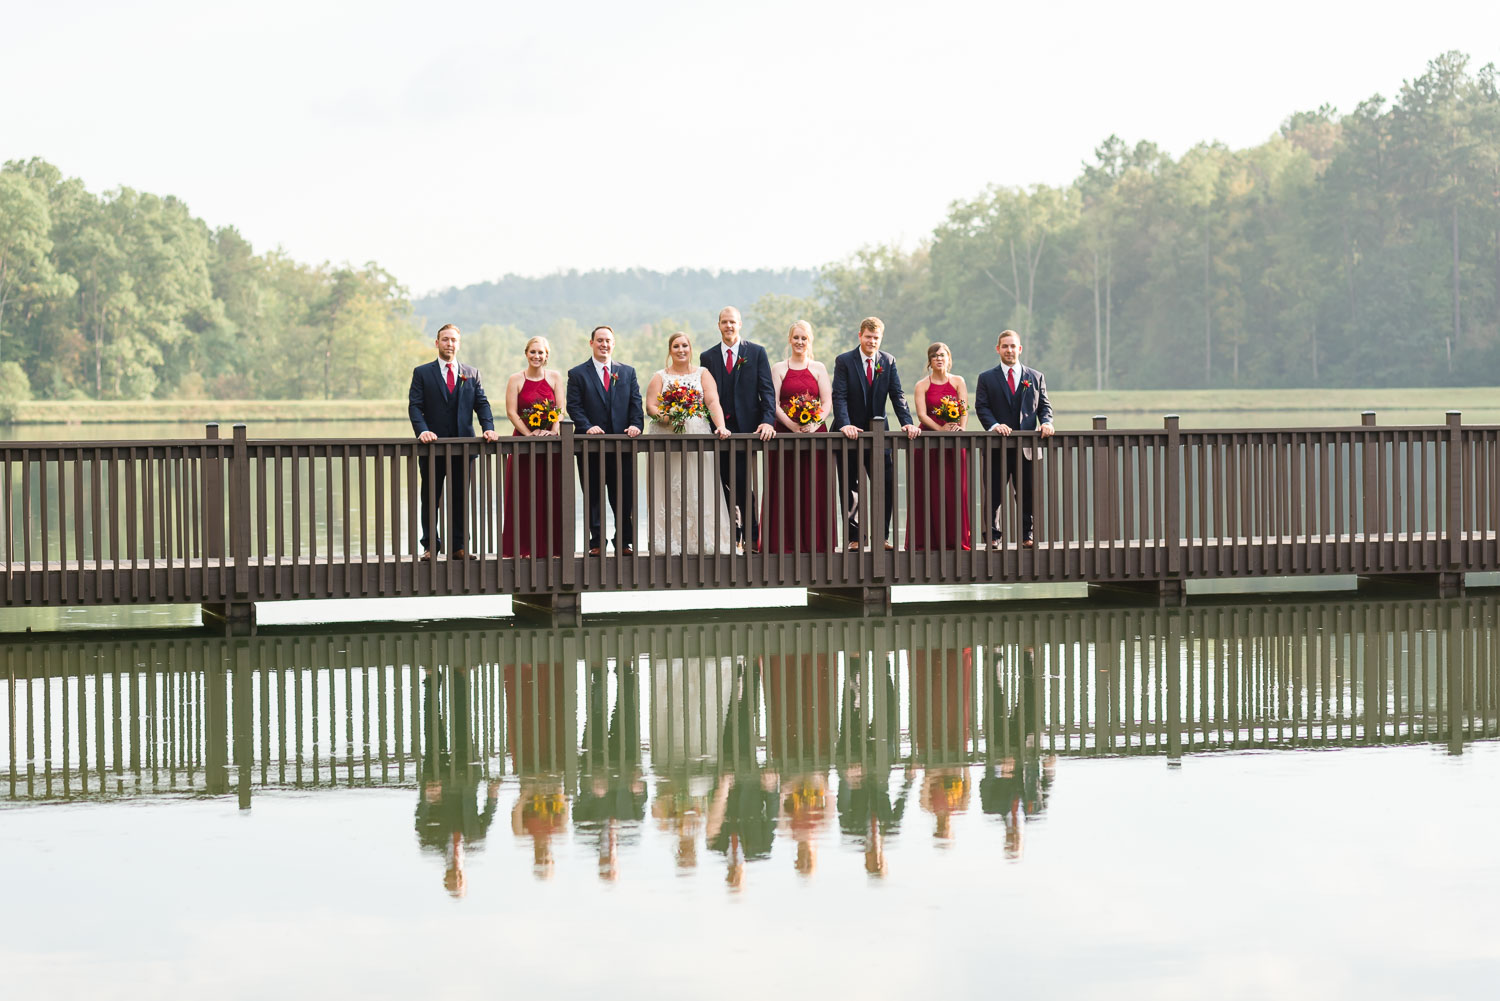 bridal party group on bridge across lower pond at Indigo falls venue in Dallas GA